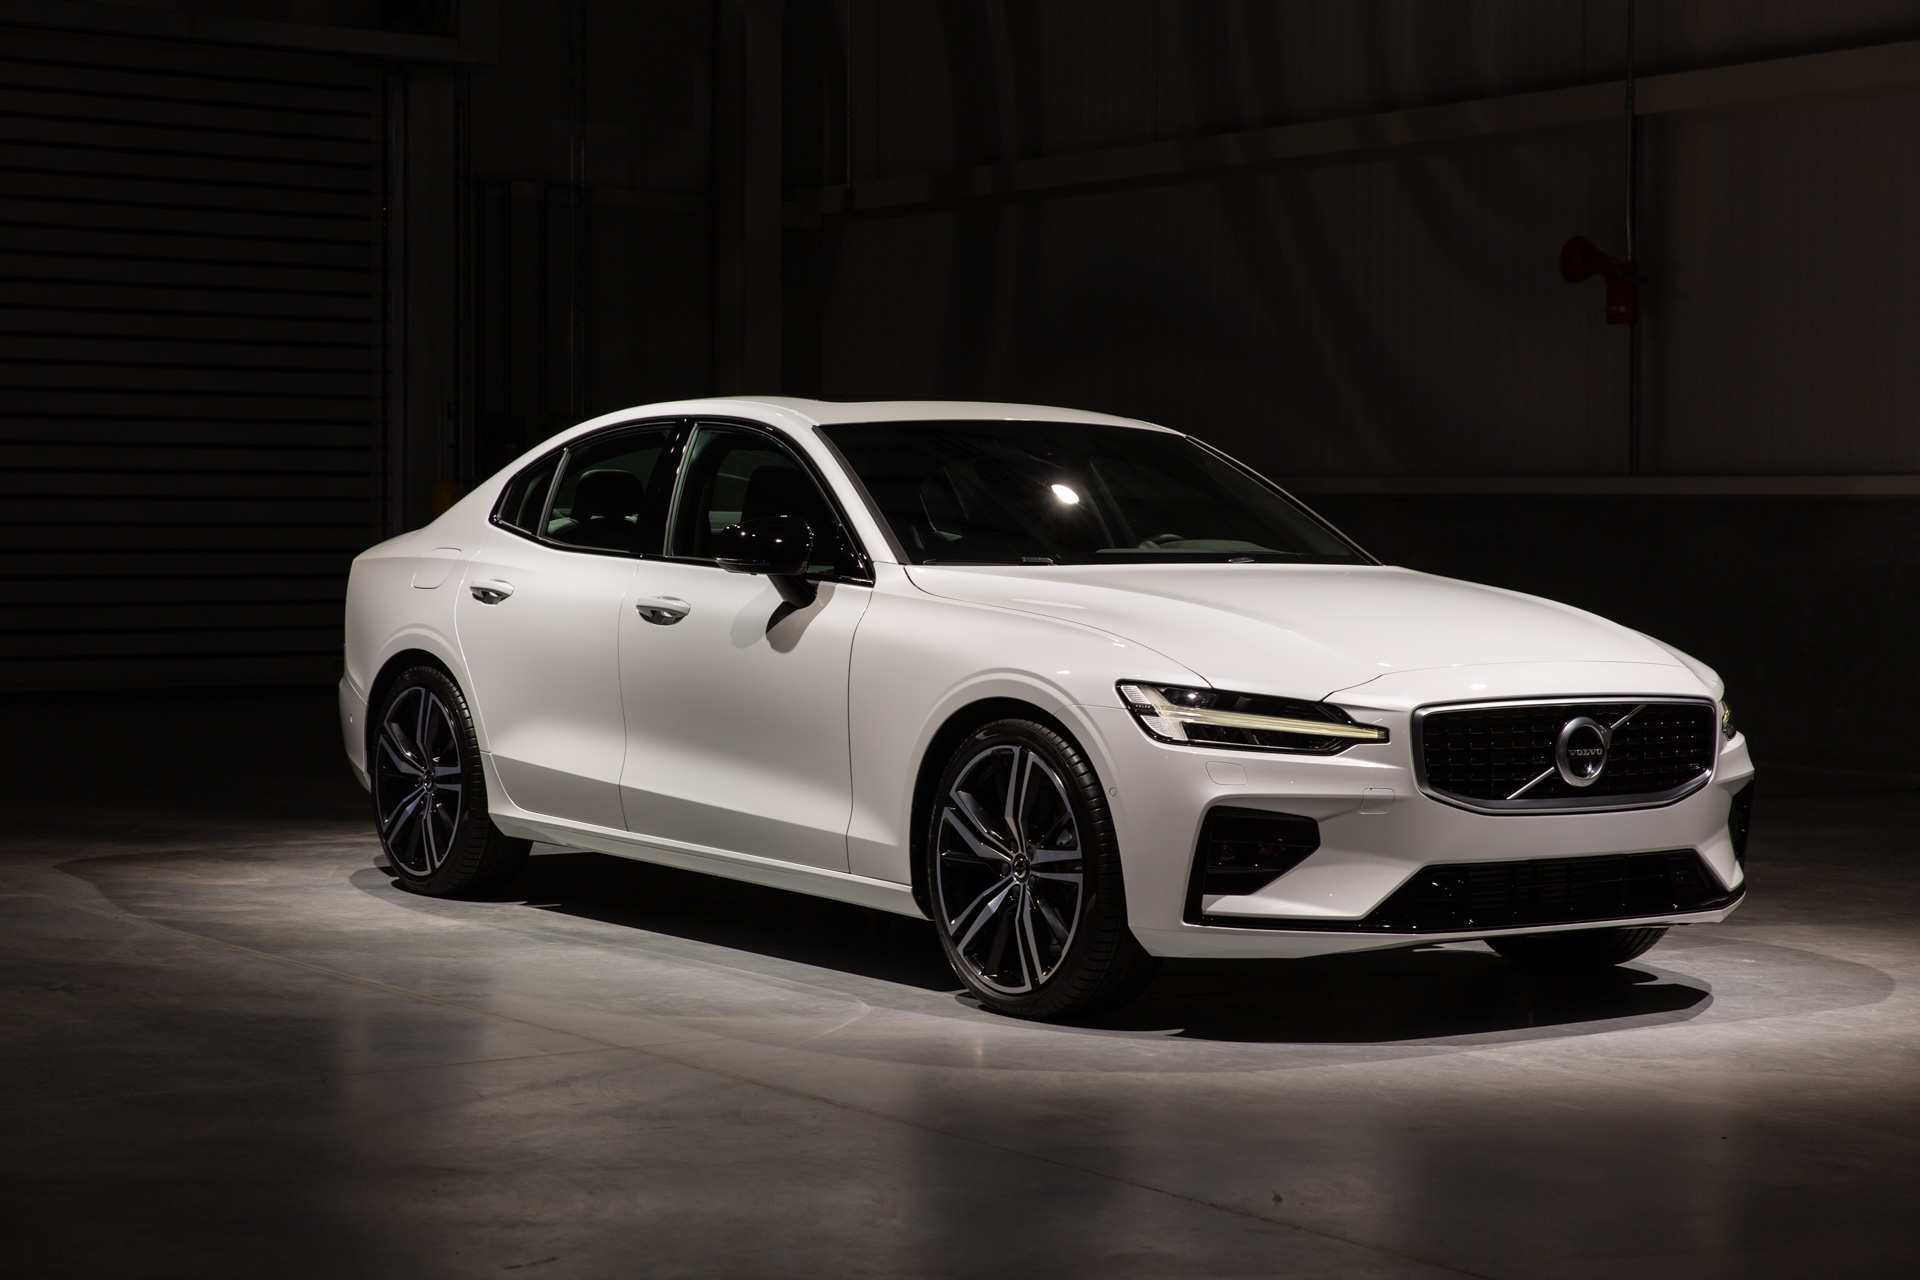 79 The Best Volvo S60 Polestar 2019 Pricing